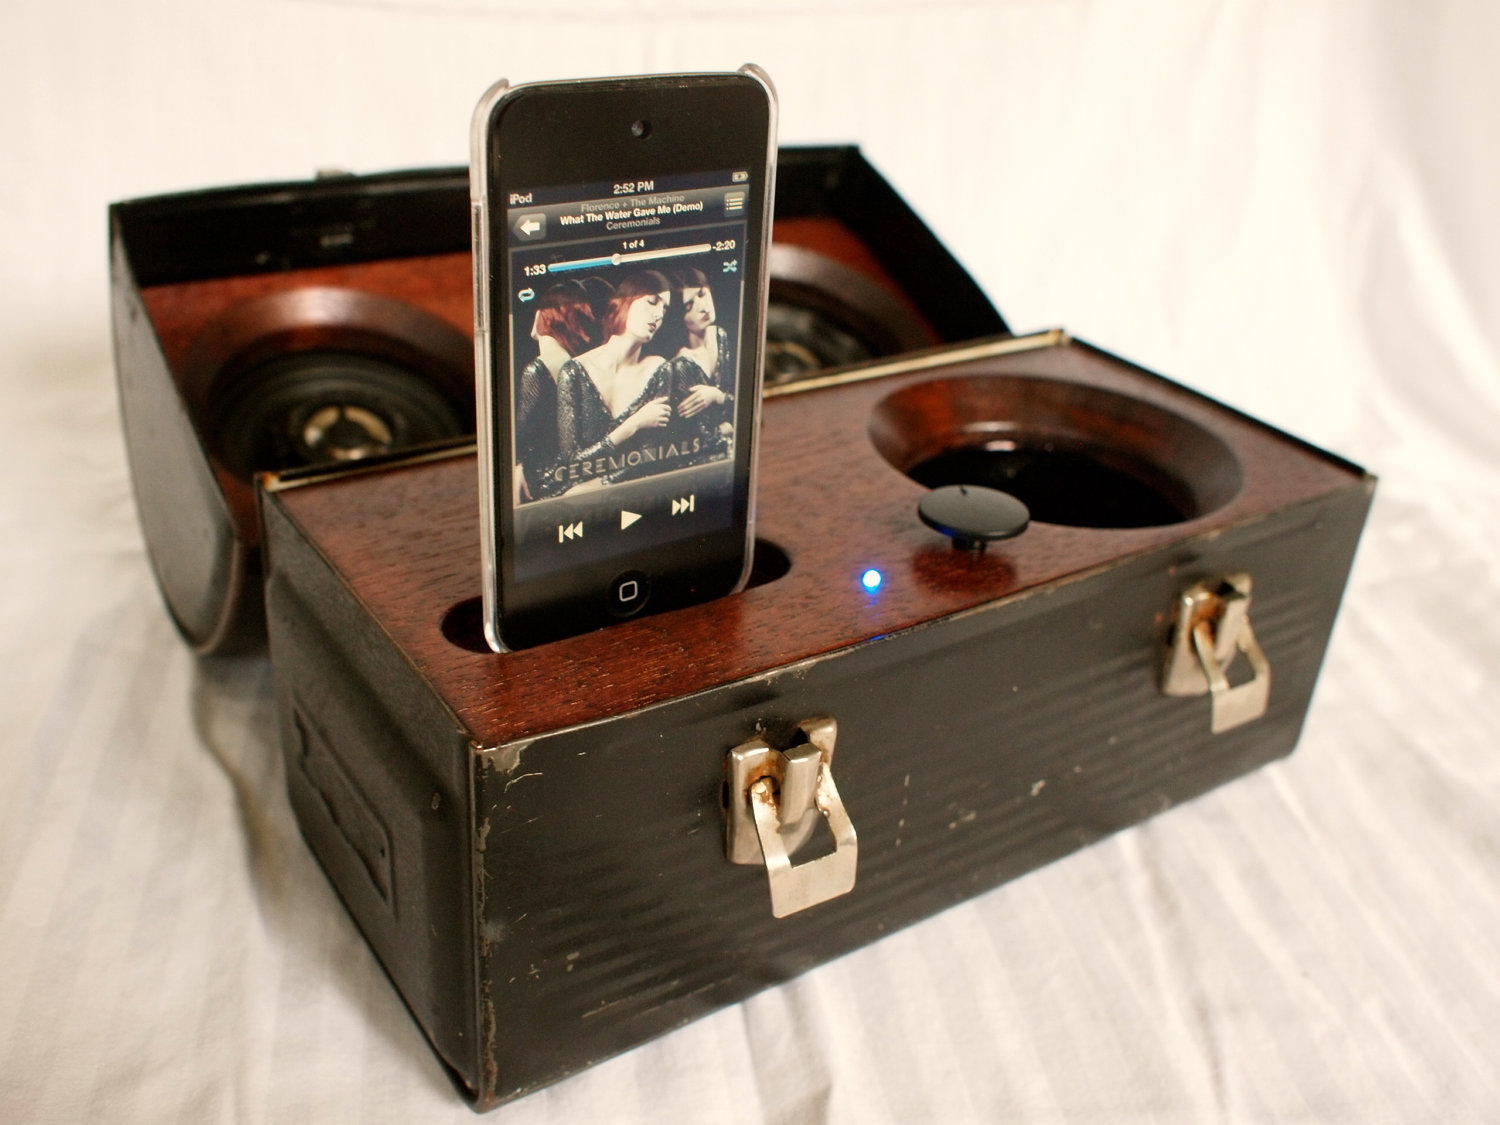 AudioPail Portable iPhone Speakers in a Lunch Box